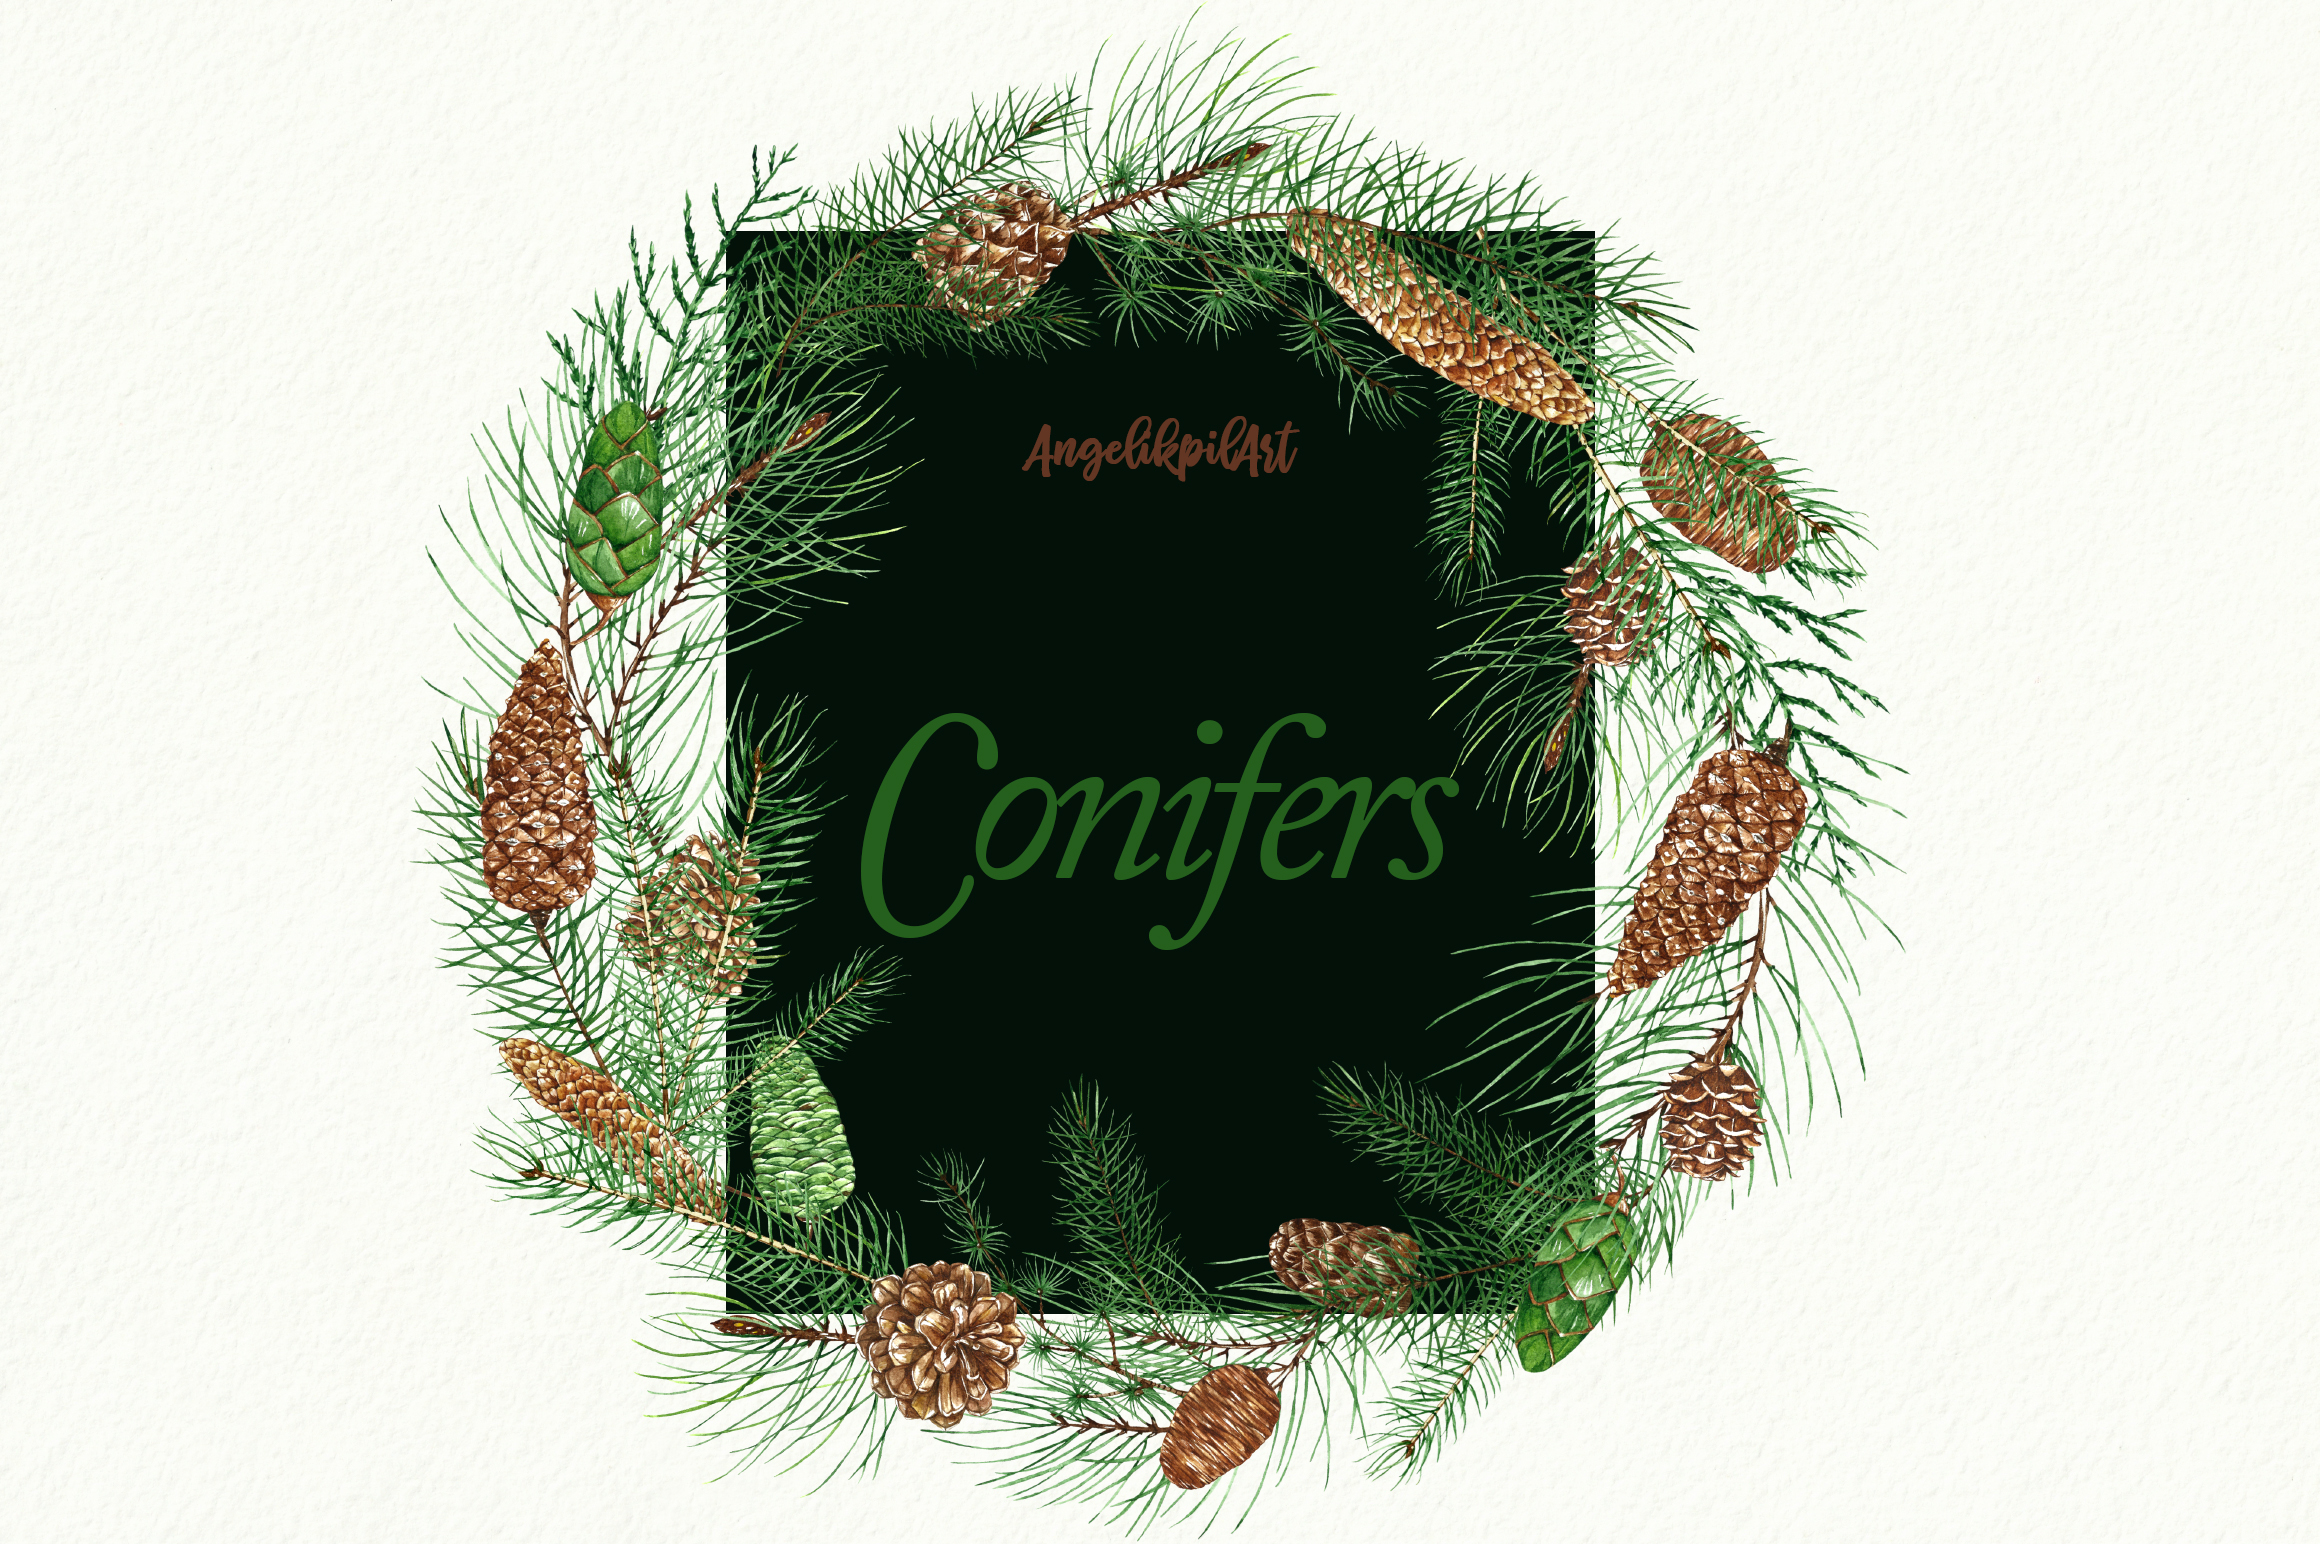 Conifers. Cones&Twigs watercolor example image 6